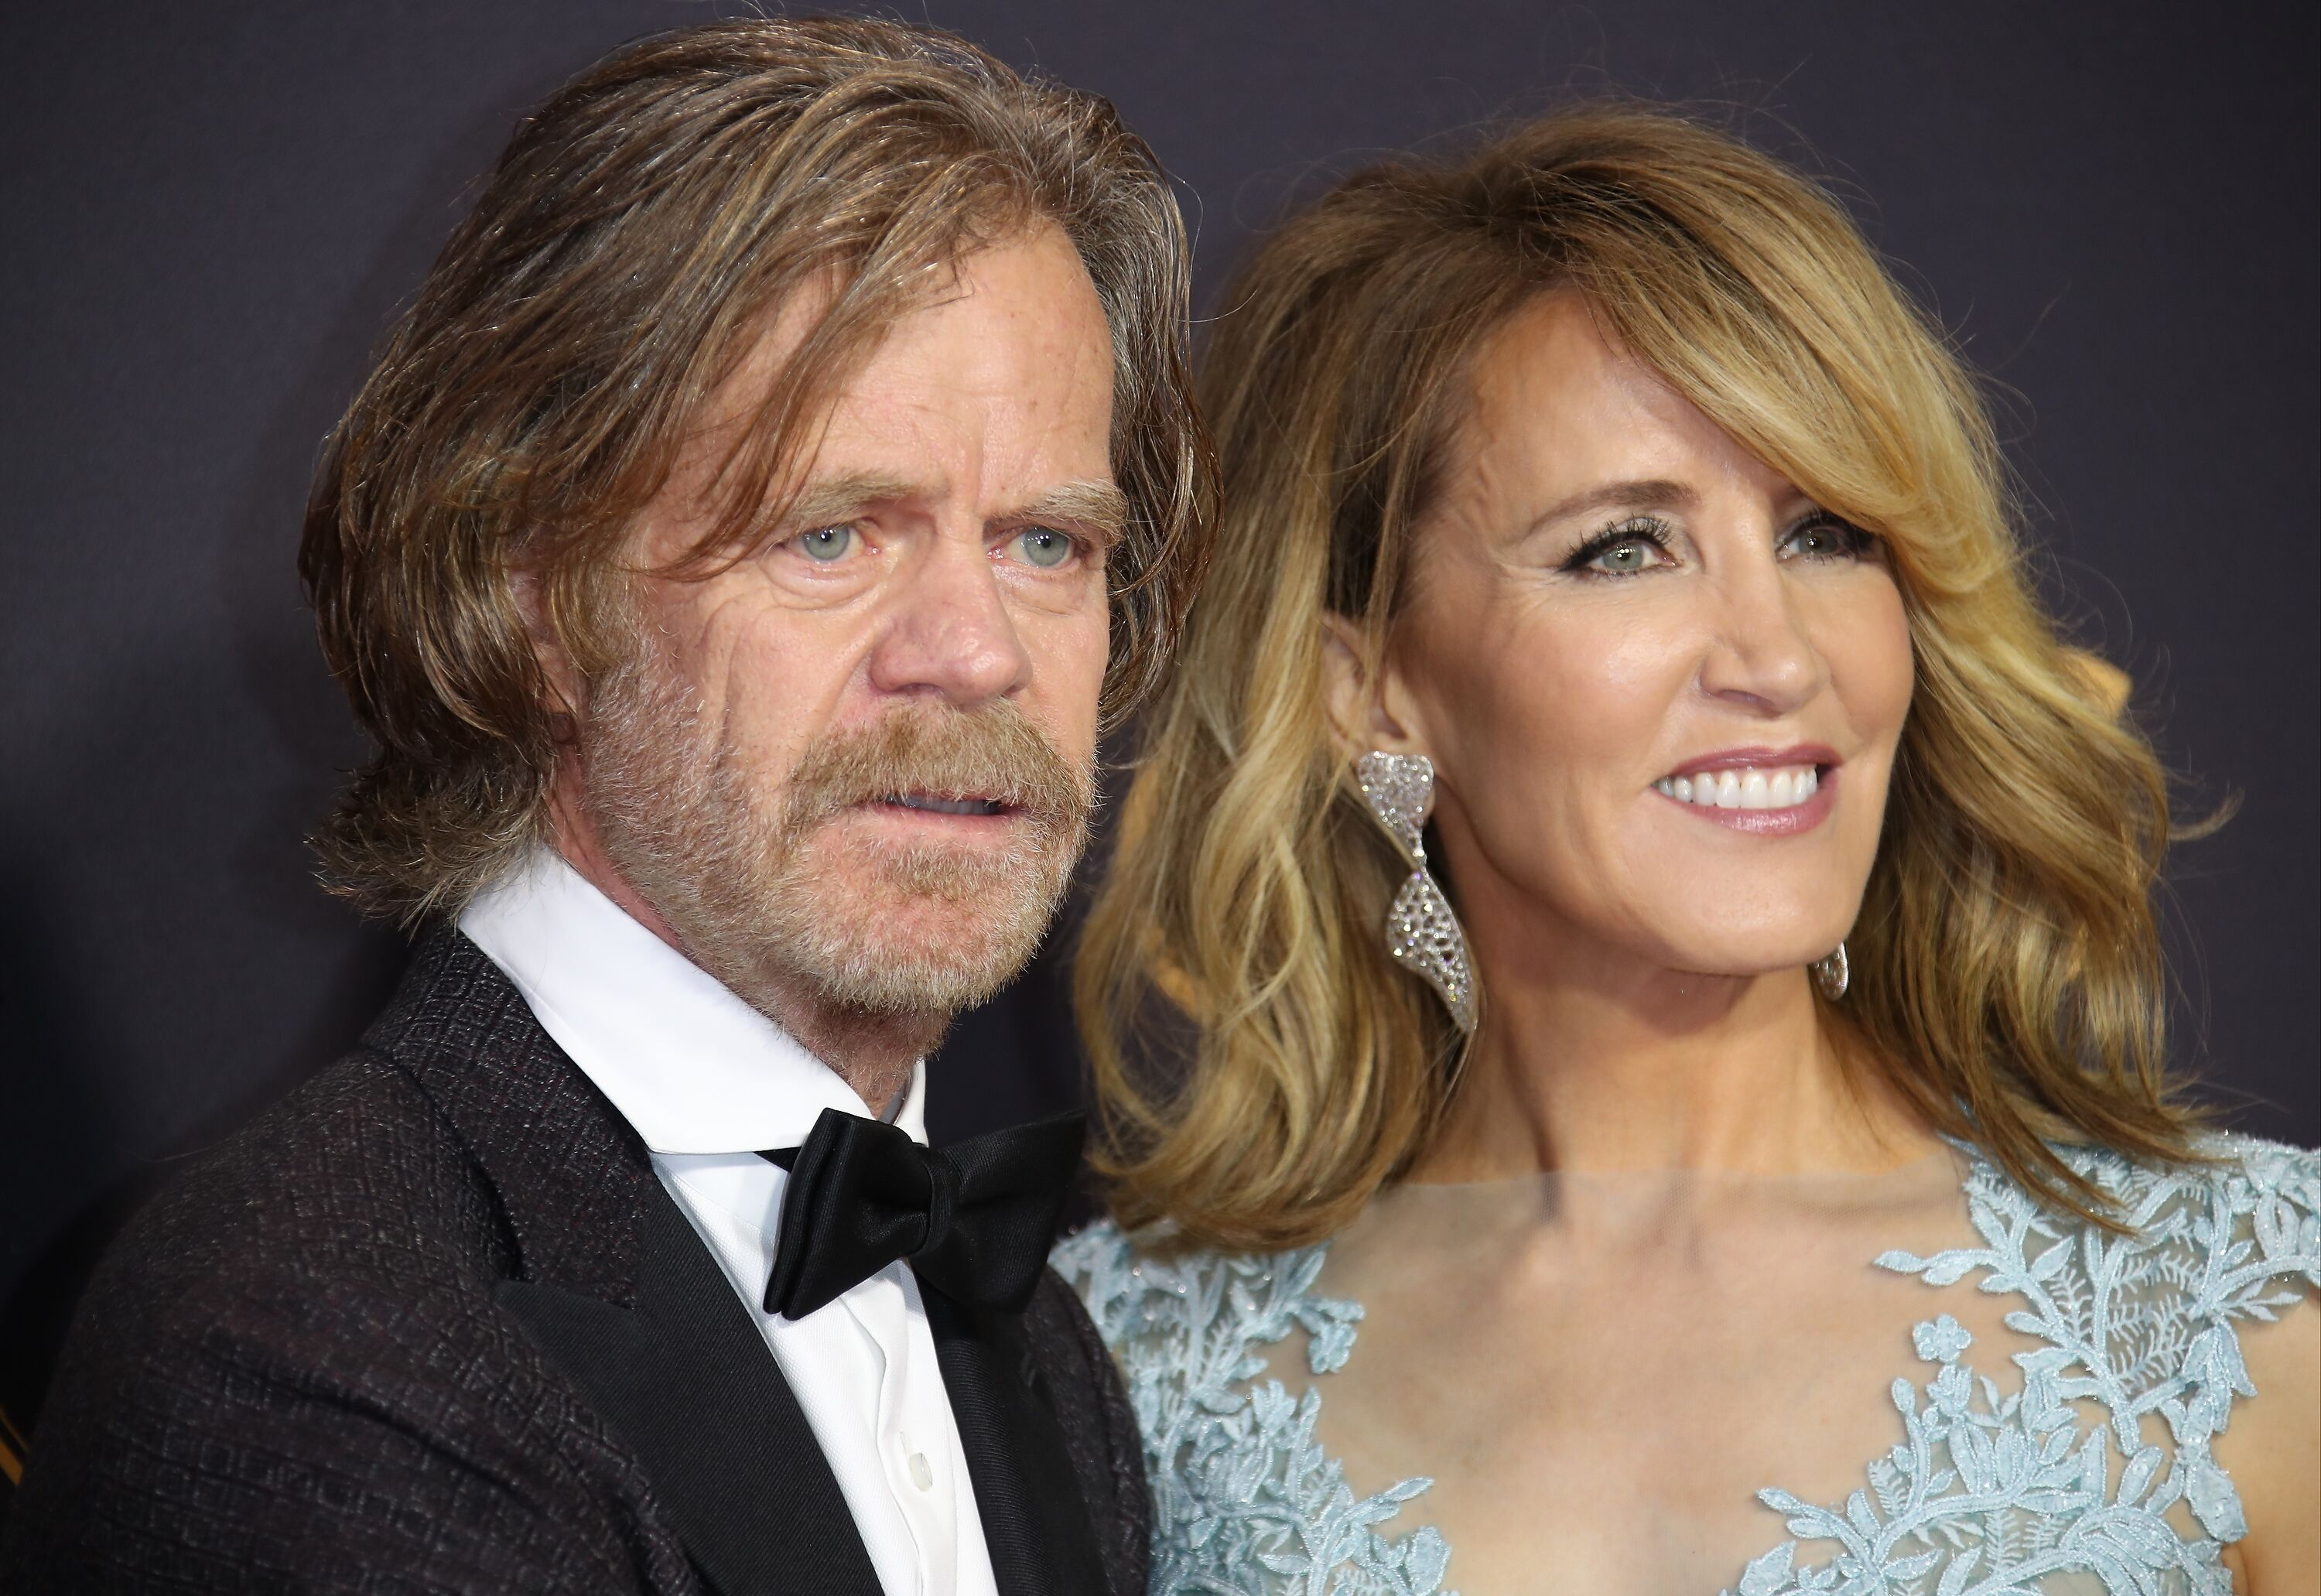 William H. Macy and Felicity Huffman at the 69th Annual Primetime Emmy Awards on September 17, 2017, in Los Angeles, California | Photo: Getty Images